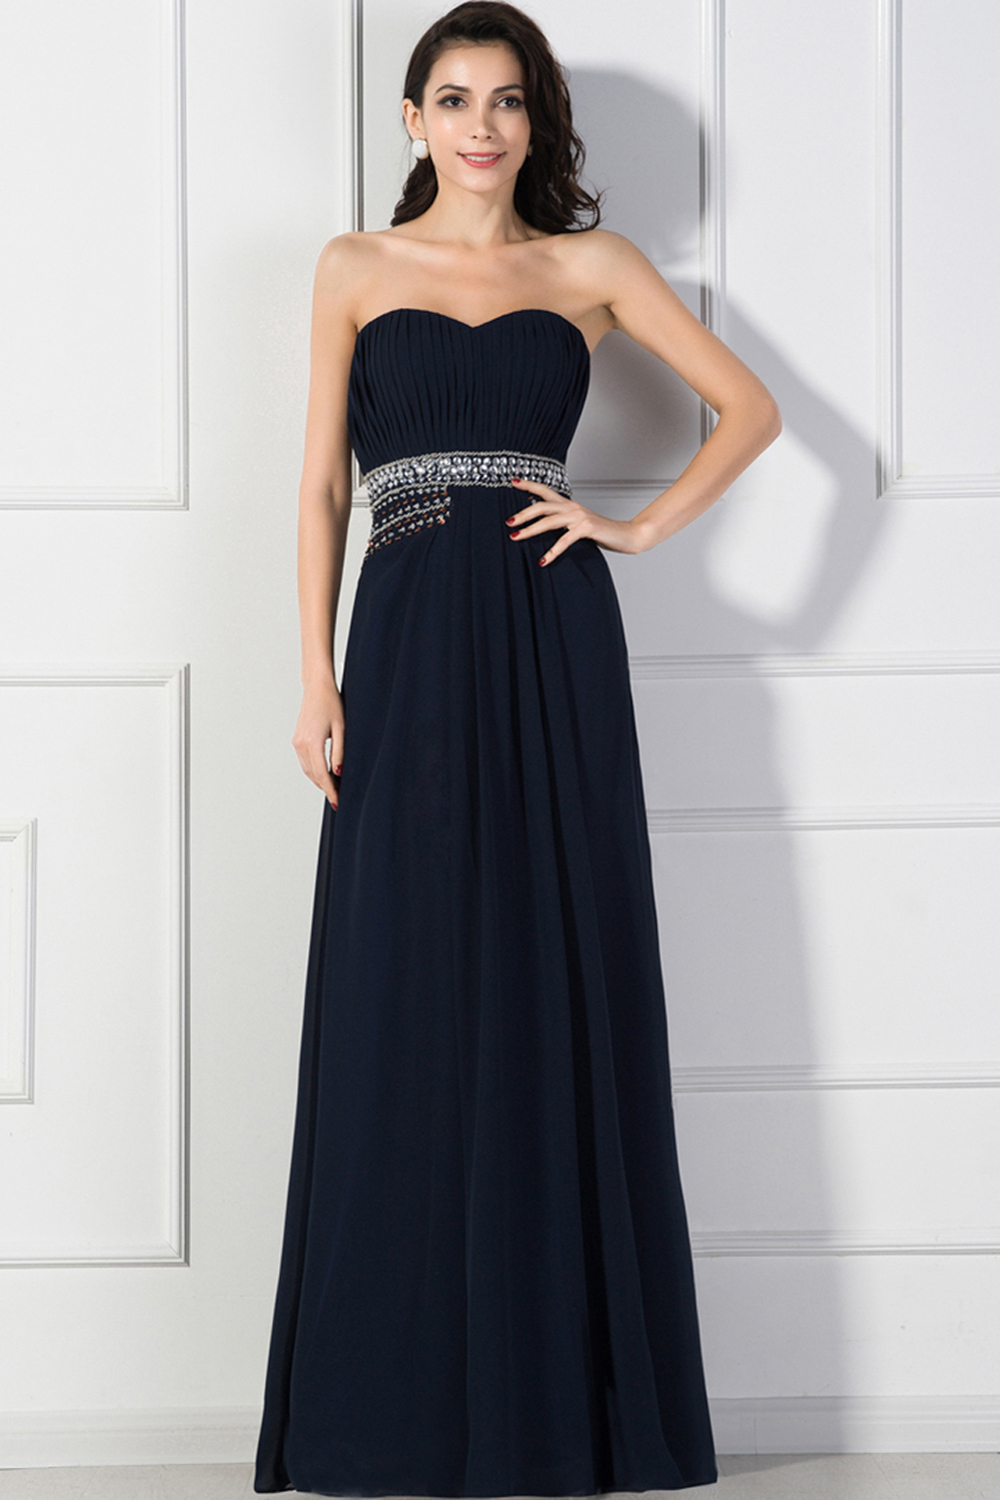 A-Line/Princess Strapless Floor Length Chiffon Prom Dress with Beads